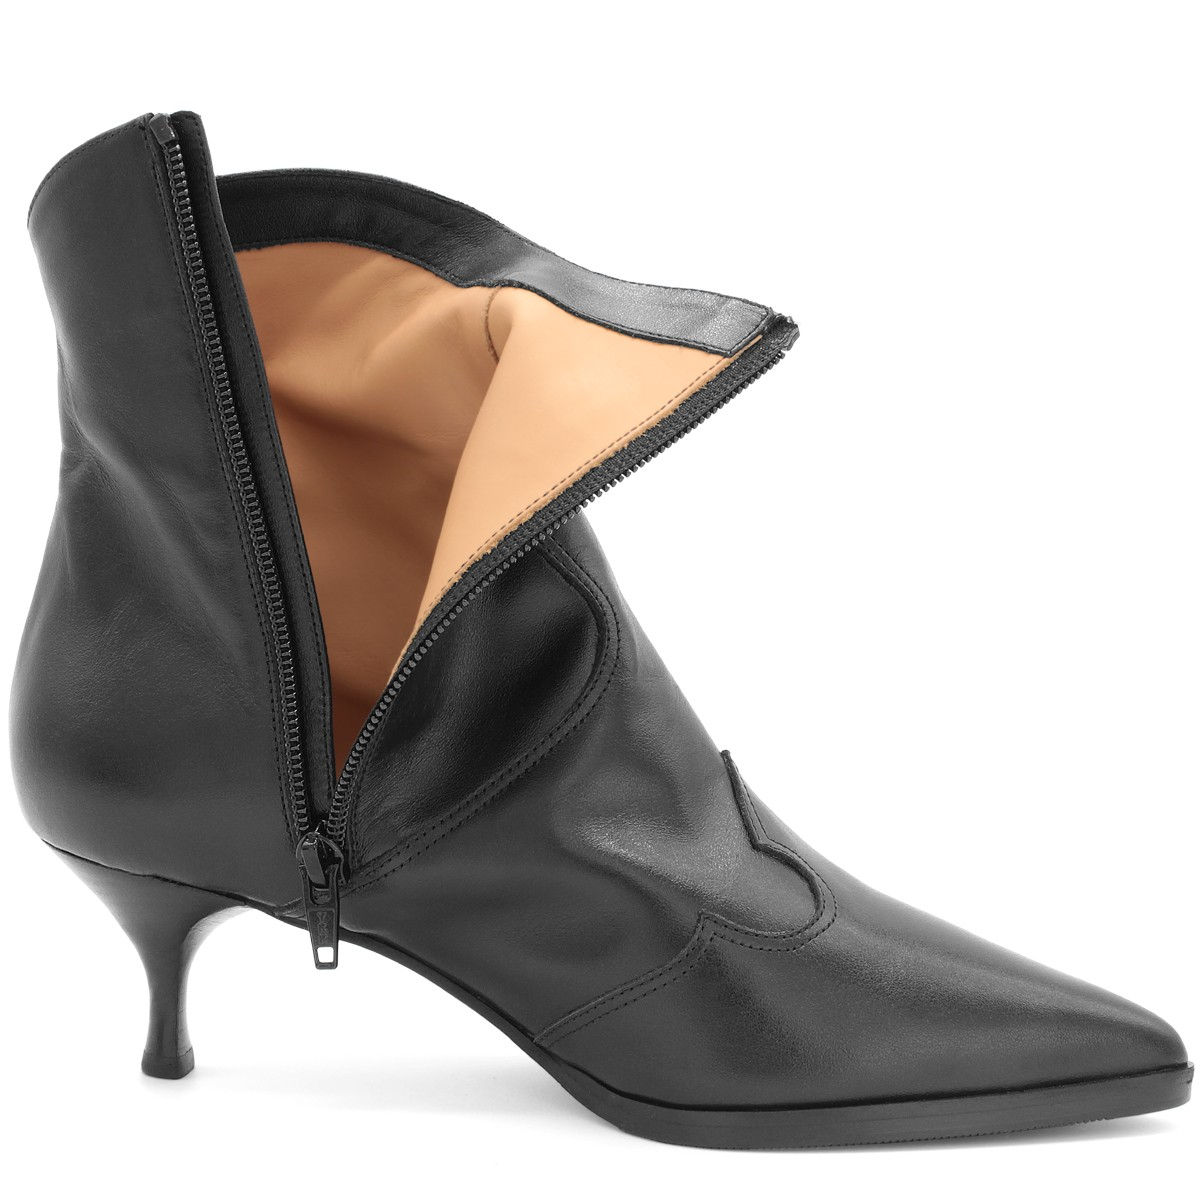 BLACK LEATHER WESTERN ANKLE BOOTS ON SPOOL HEEL